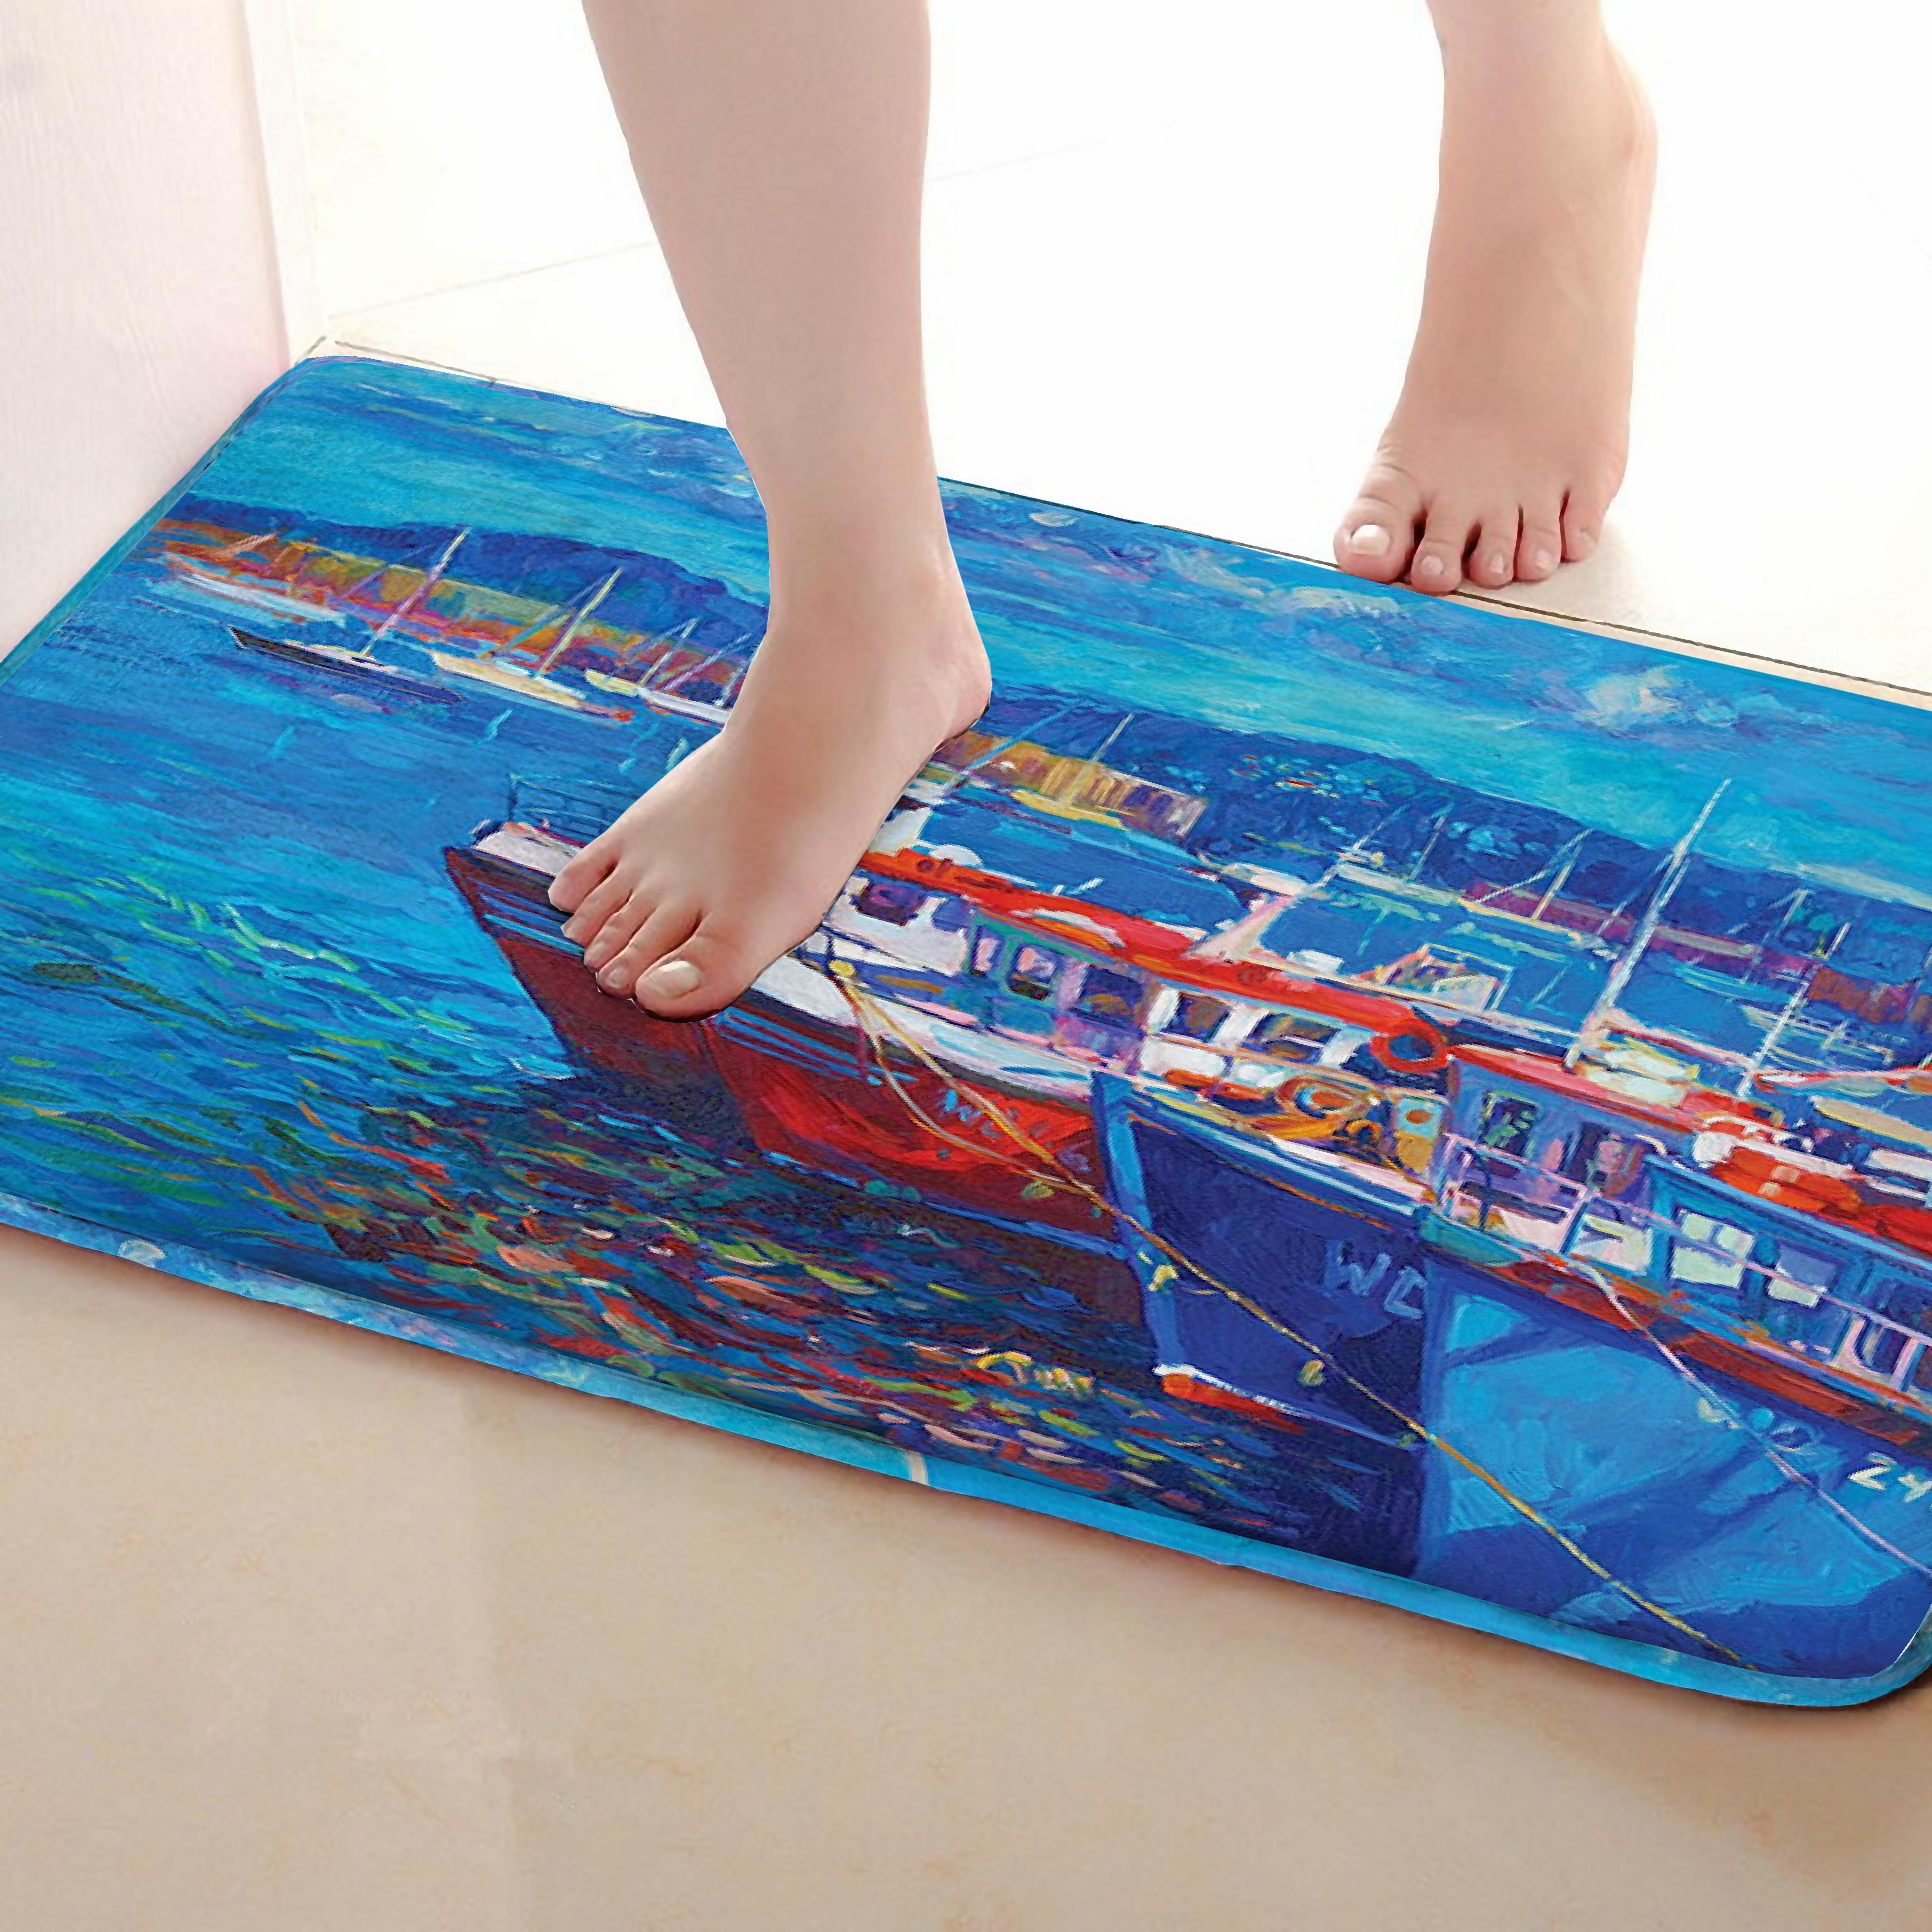 Painting Style Bathroom Mat,Funny Anti Skid Bath Mat,Shower Curtains Accessories,Matching Your Shower Curtain